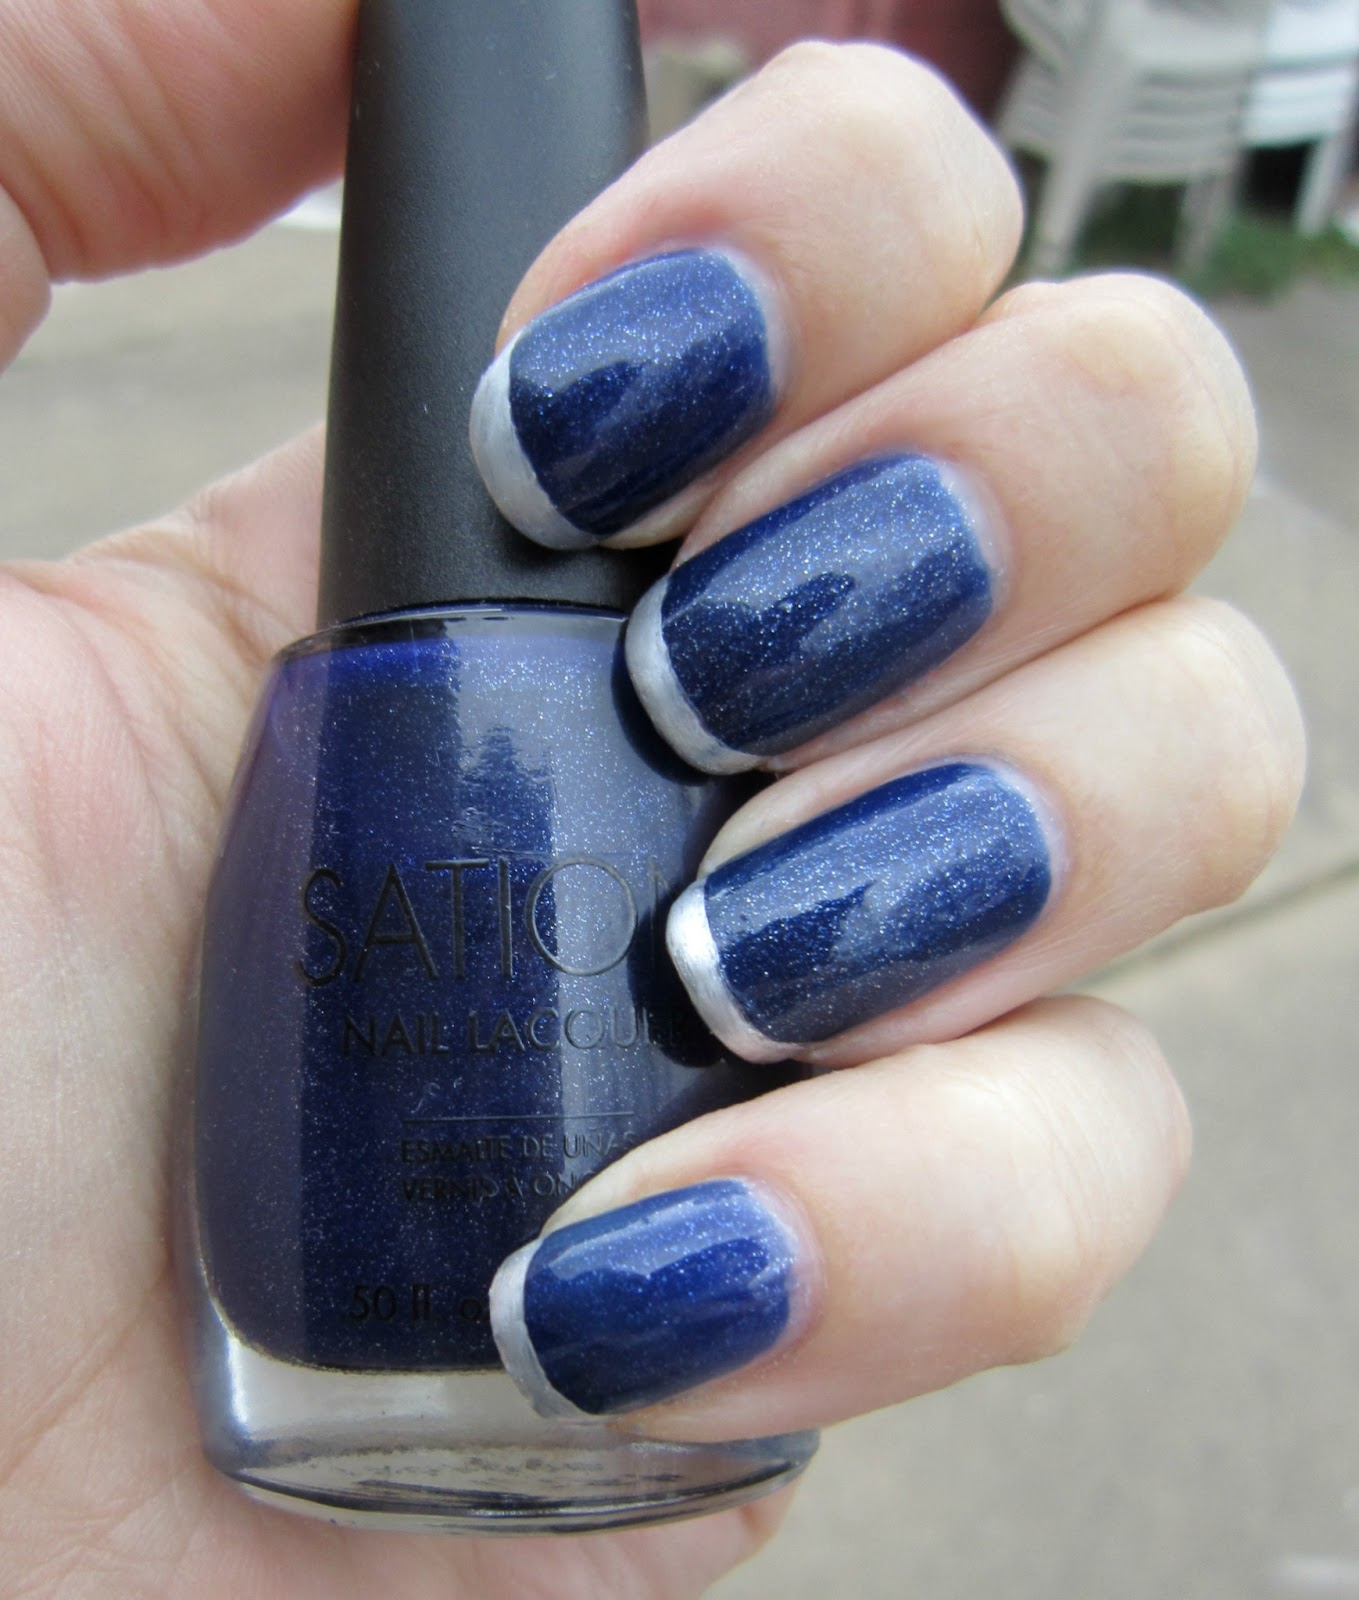 Nail Polish Tips: Concrete And Nail Polish: Metallic French Tips With Silver